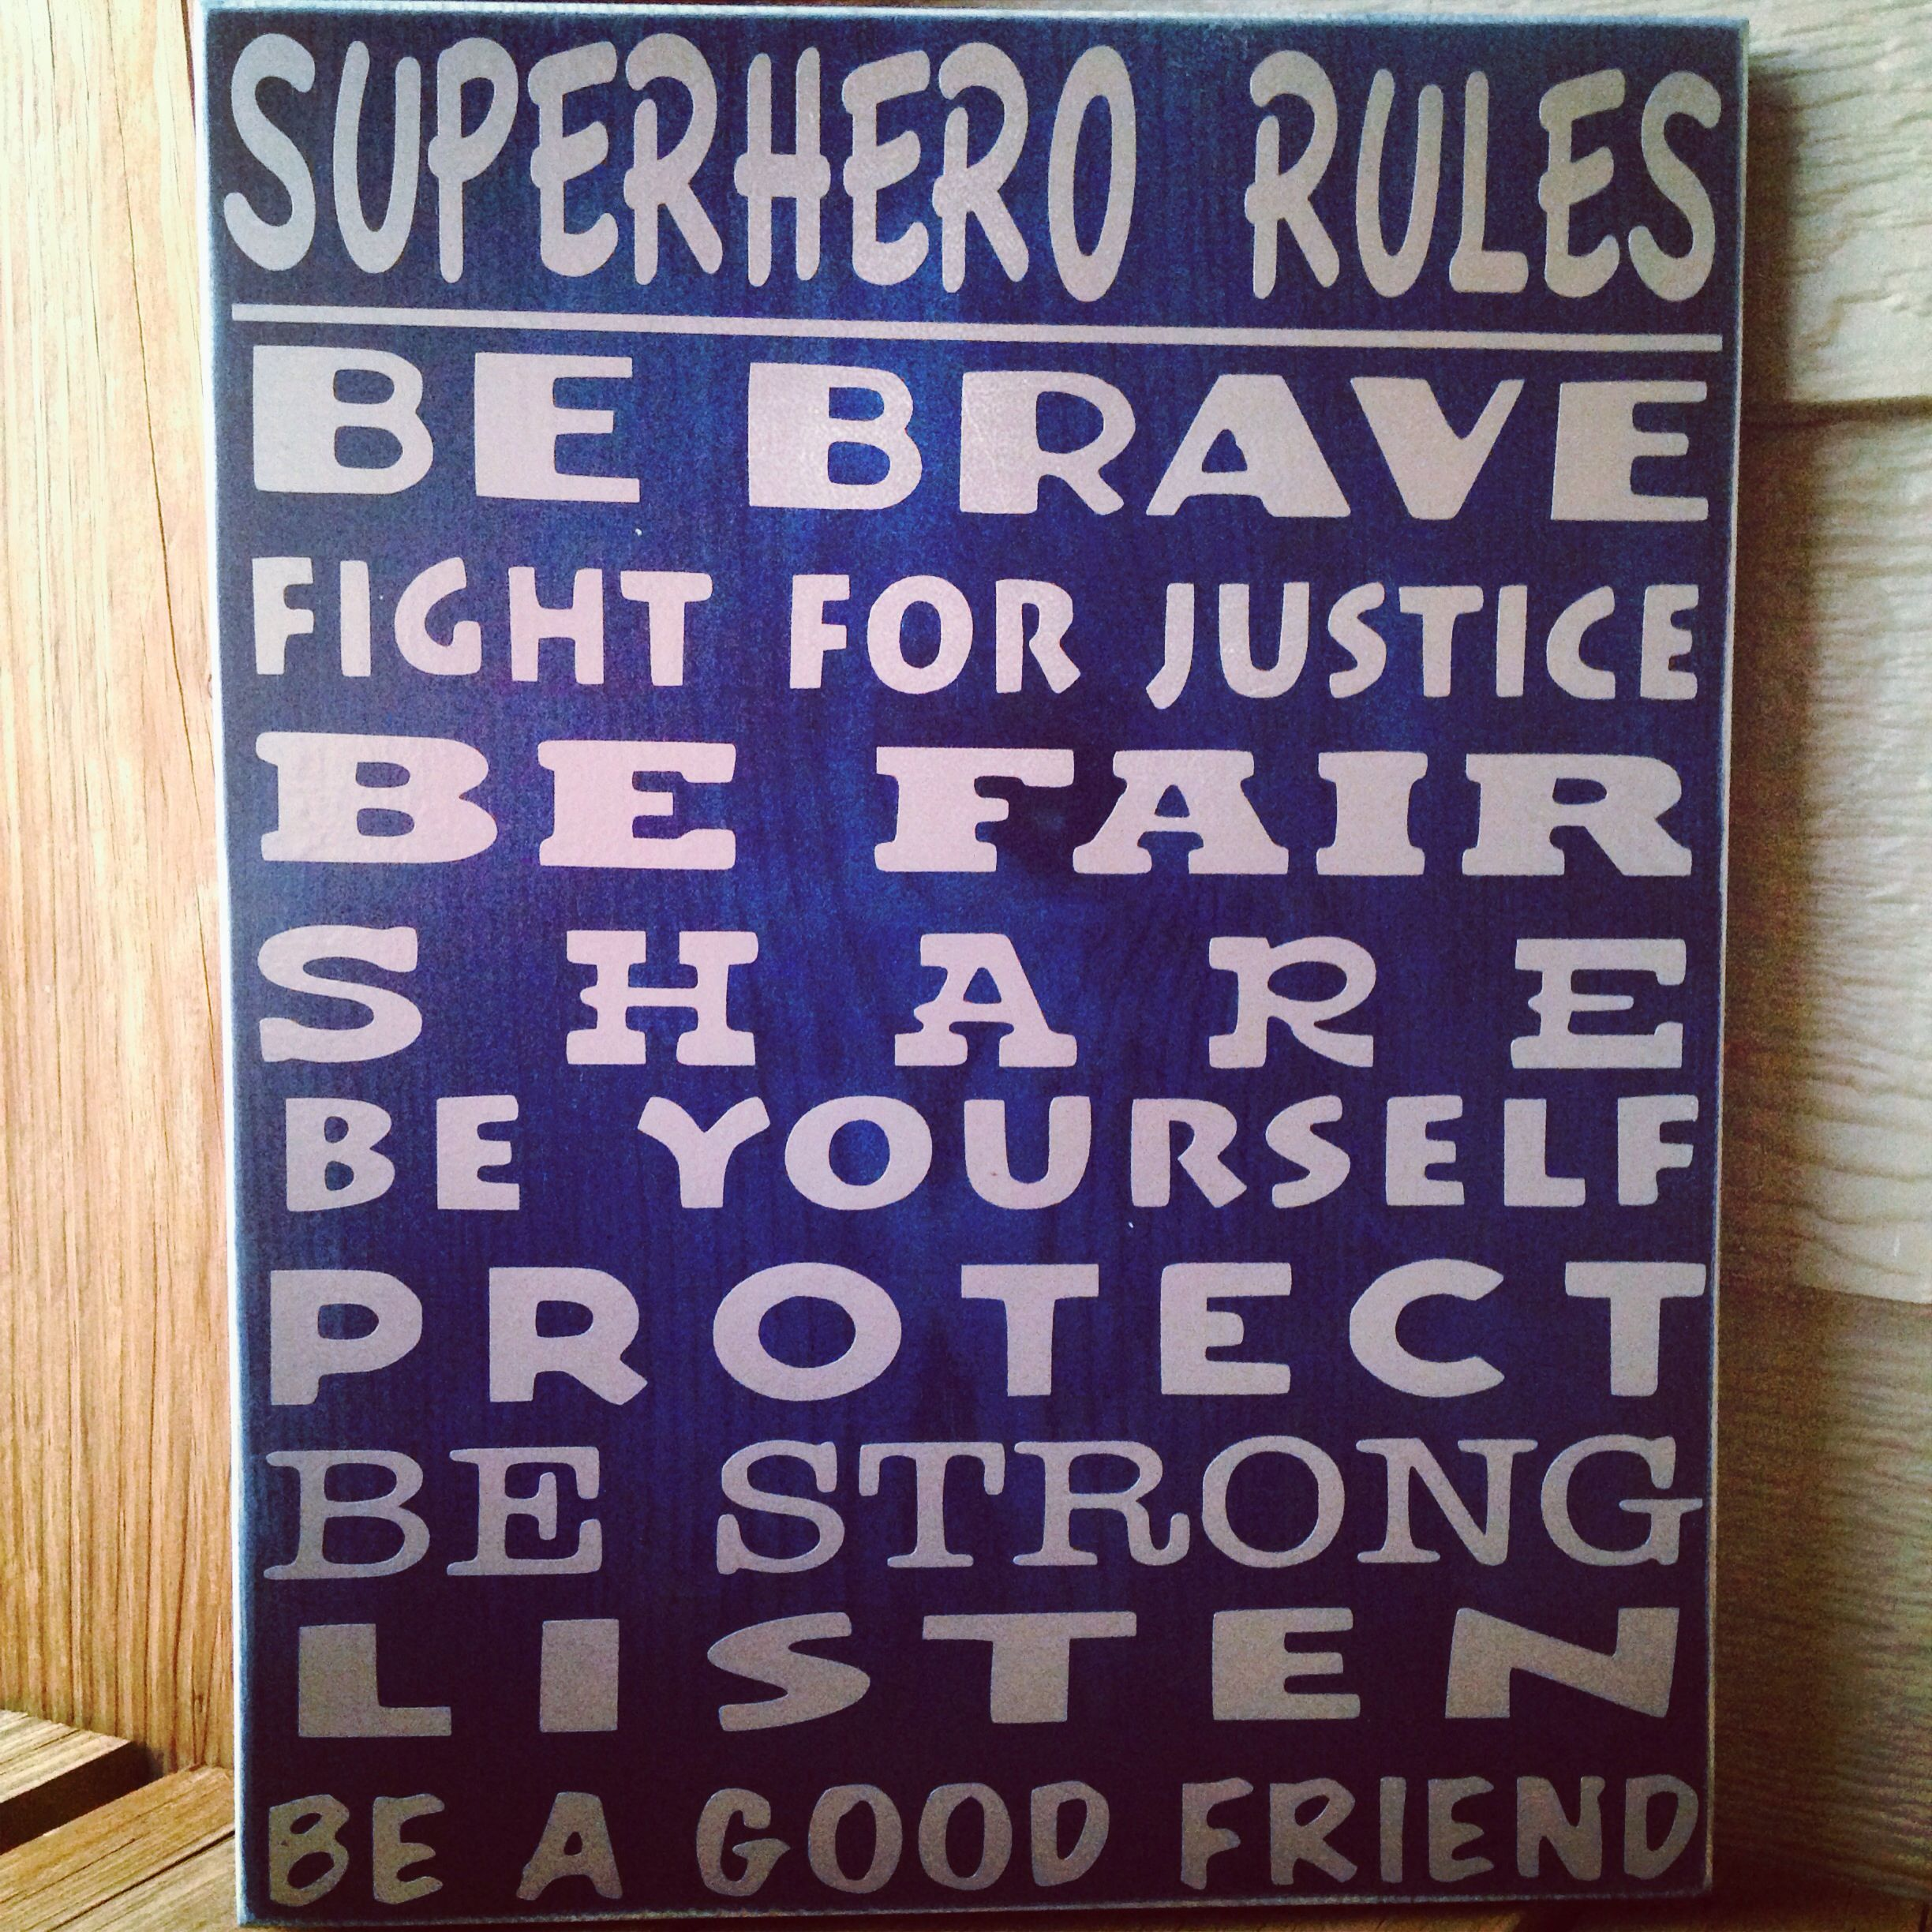 Superhero Rules